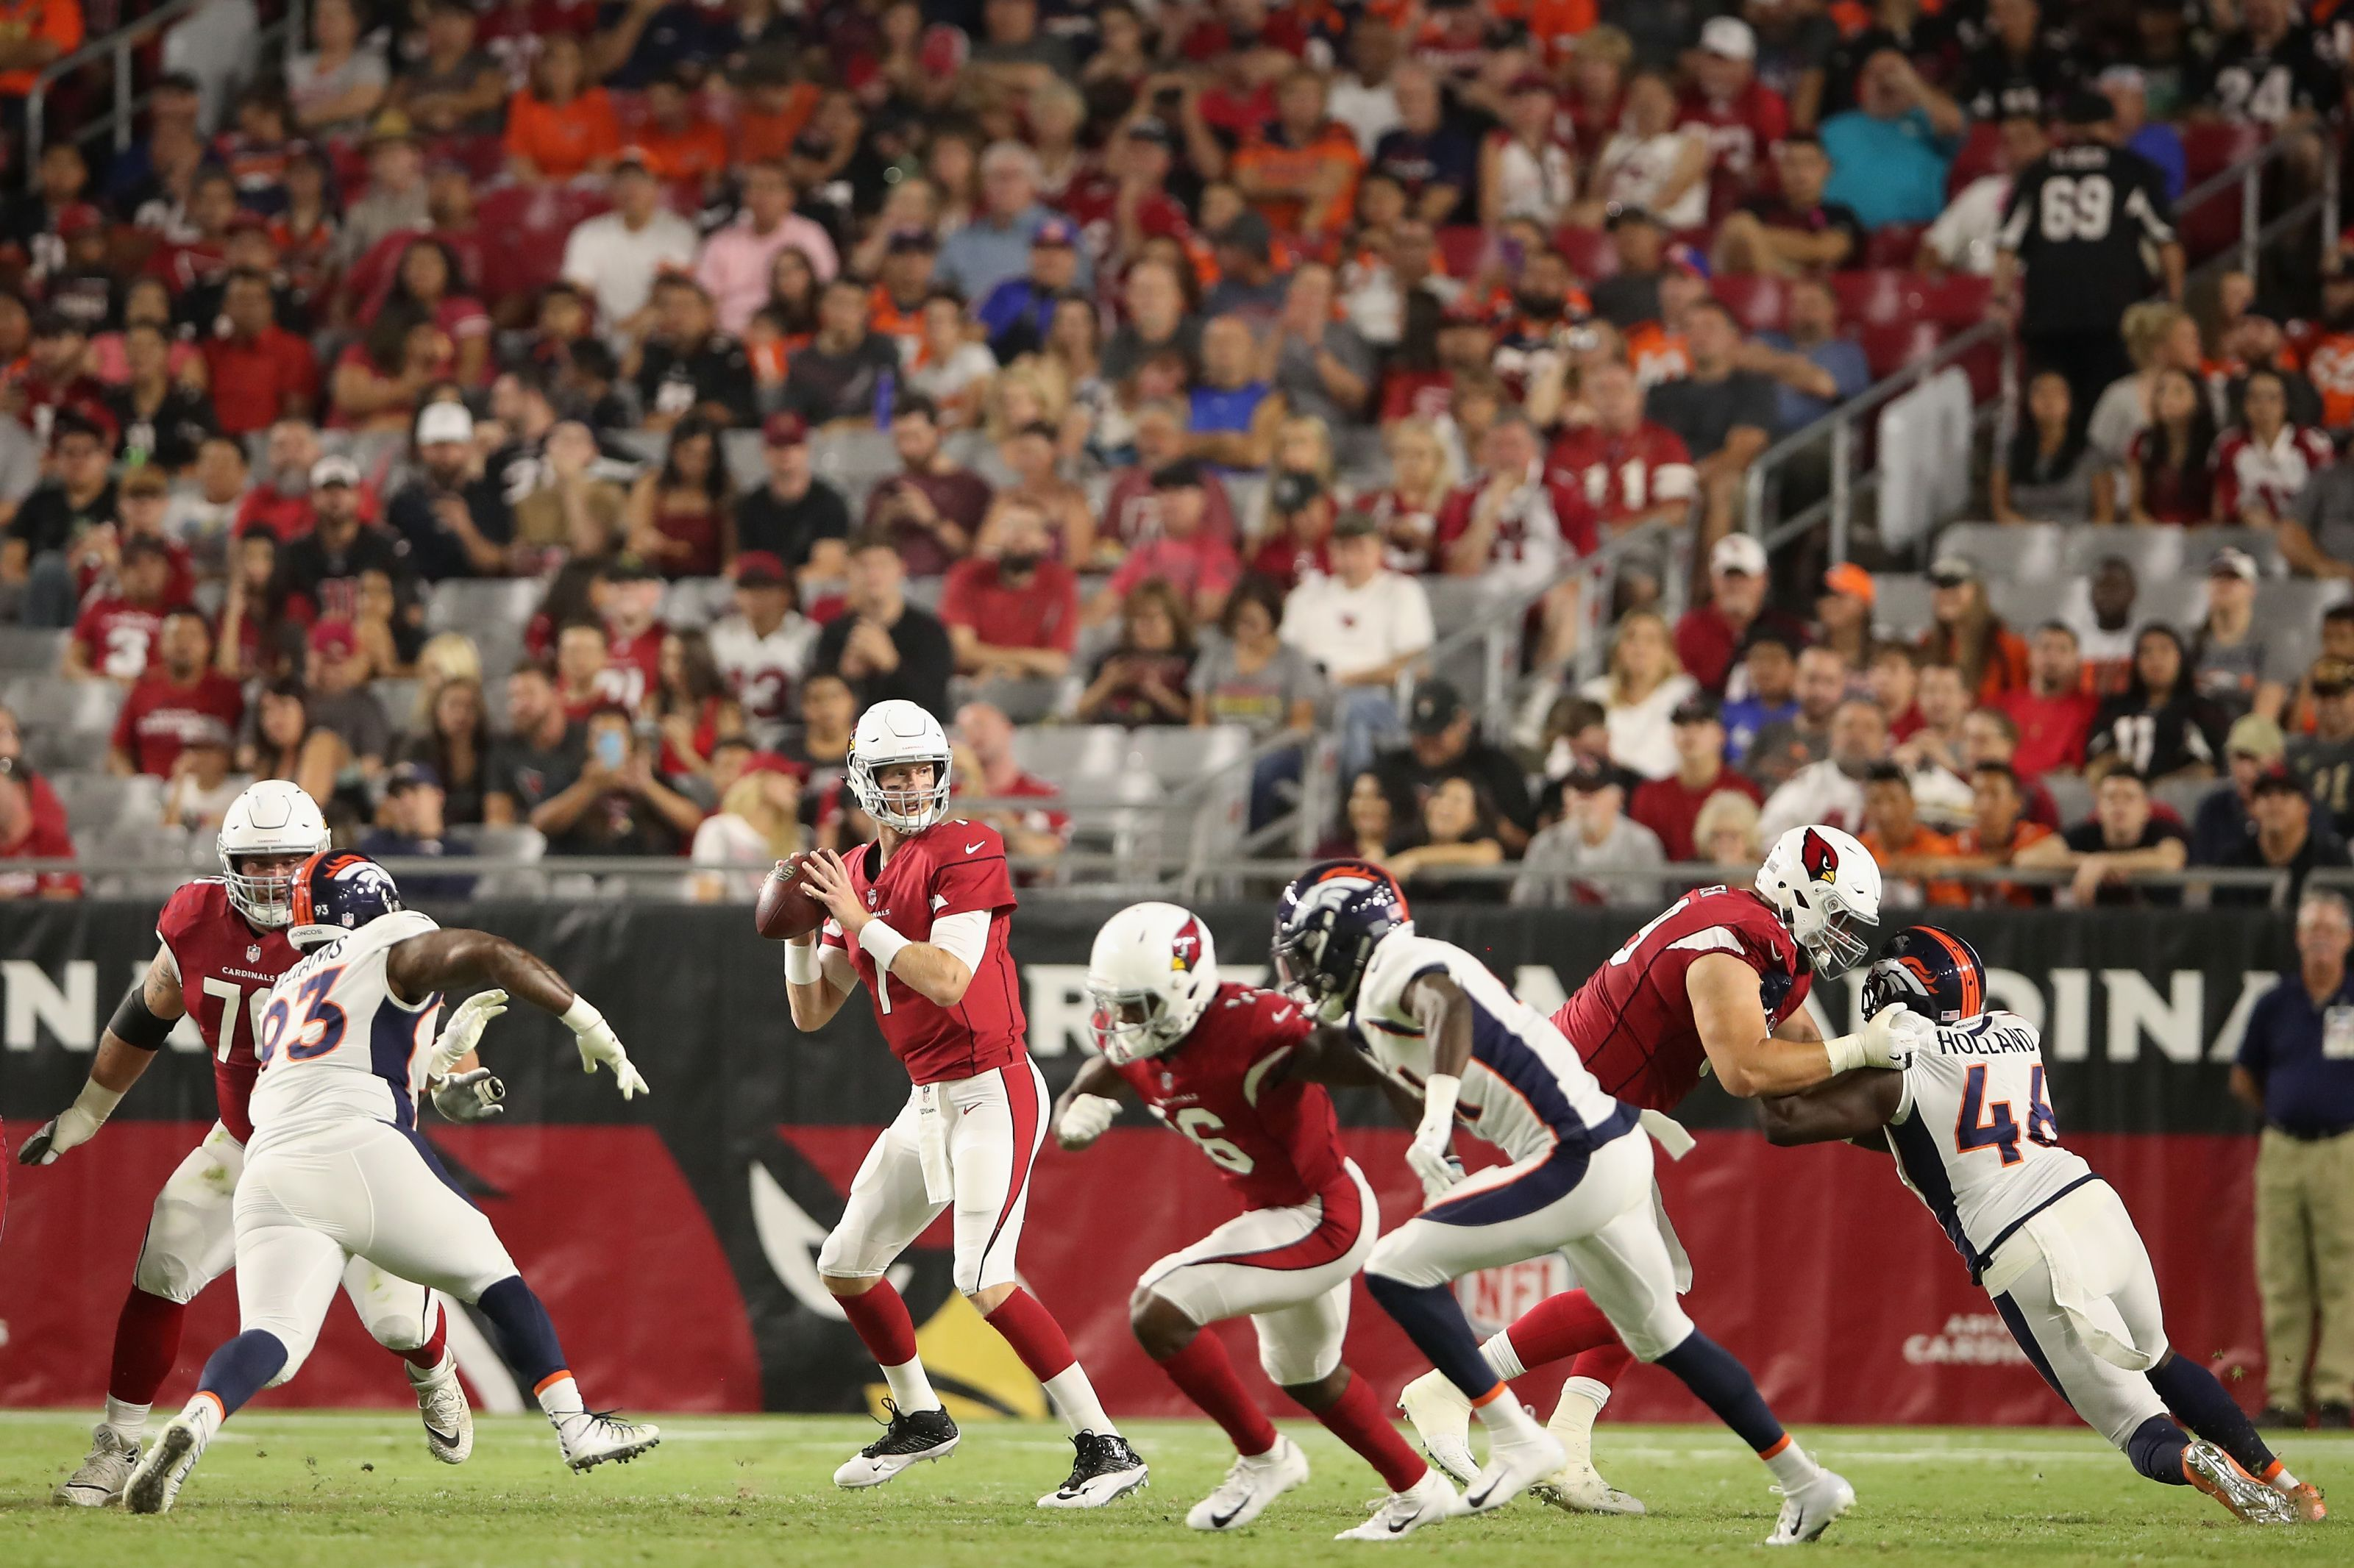 A Loss To The Cardinals Could Bring A Wave Of Change Especially Losing To Josh Rosen A Quarterback The Broncos Decided They Broncos Denver Broncos Von Miller